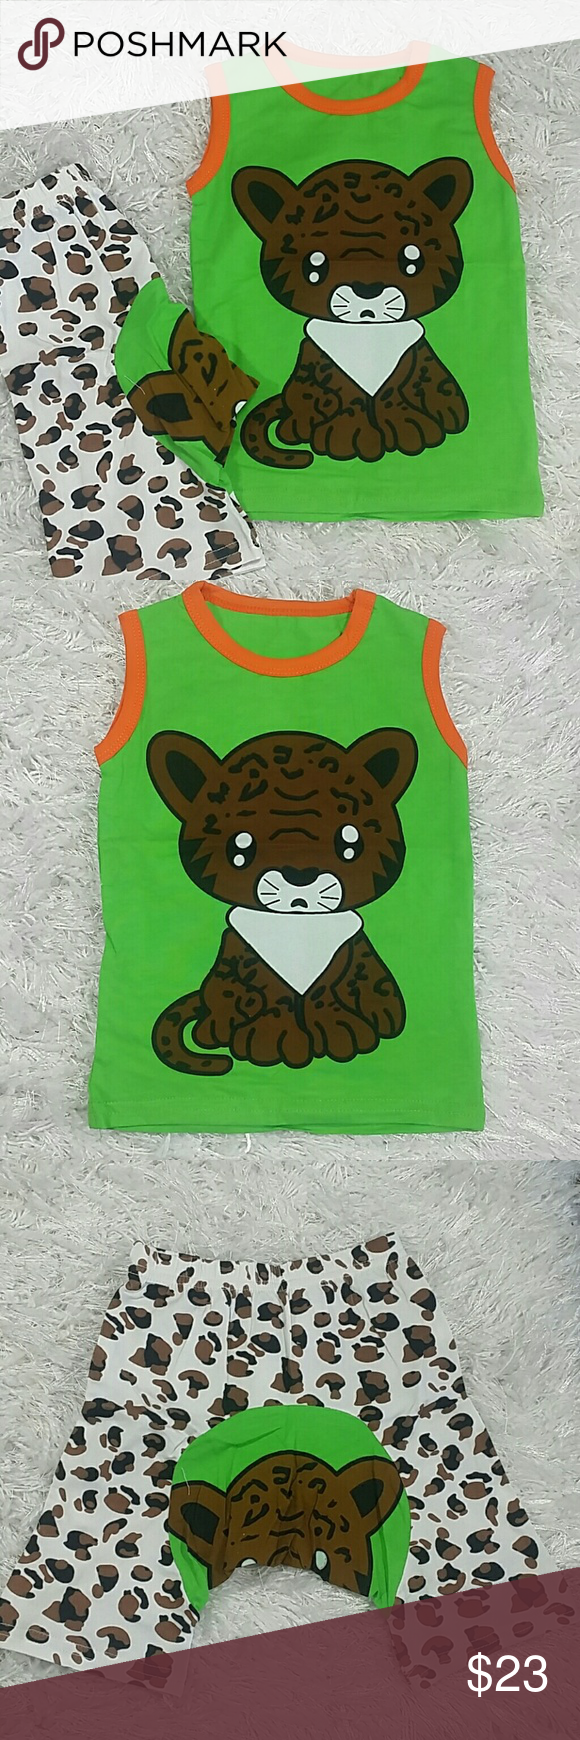 Green Sad Kitty 2 pc set.  Kids Adorable and comfortable 2 pc set of shorts and a matching tee with a cute sad kitty design.  Very cute item.  This item is brand new and never used. Matching Sets